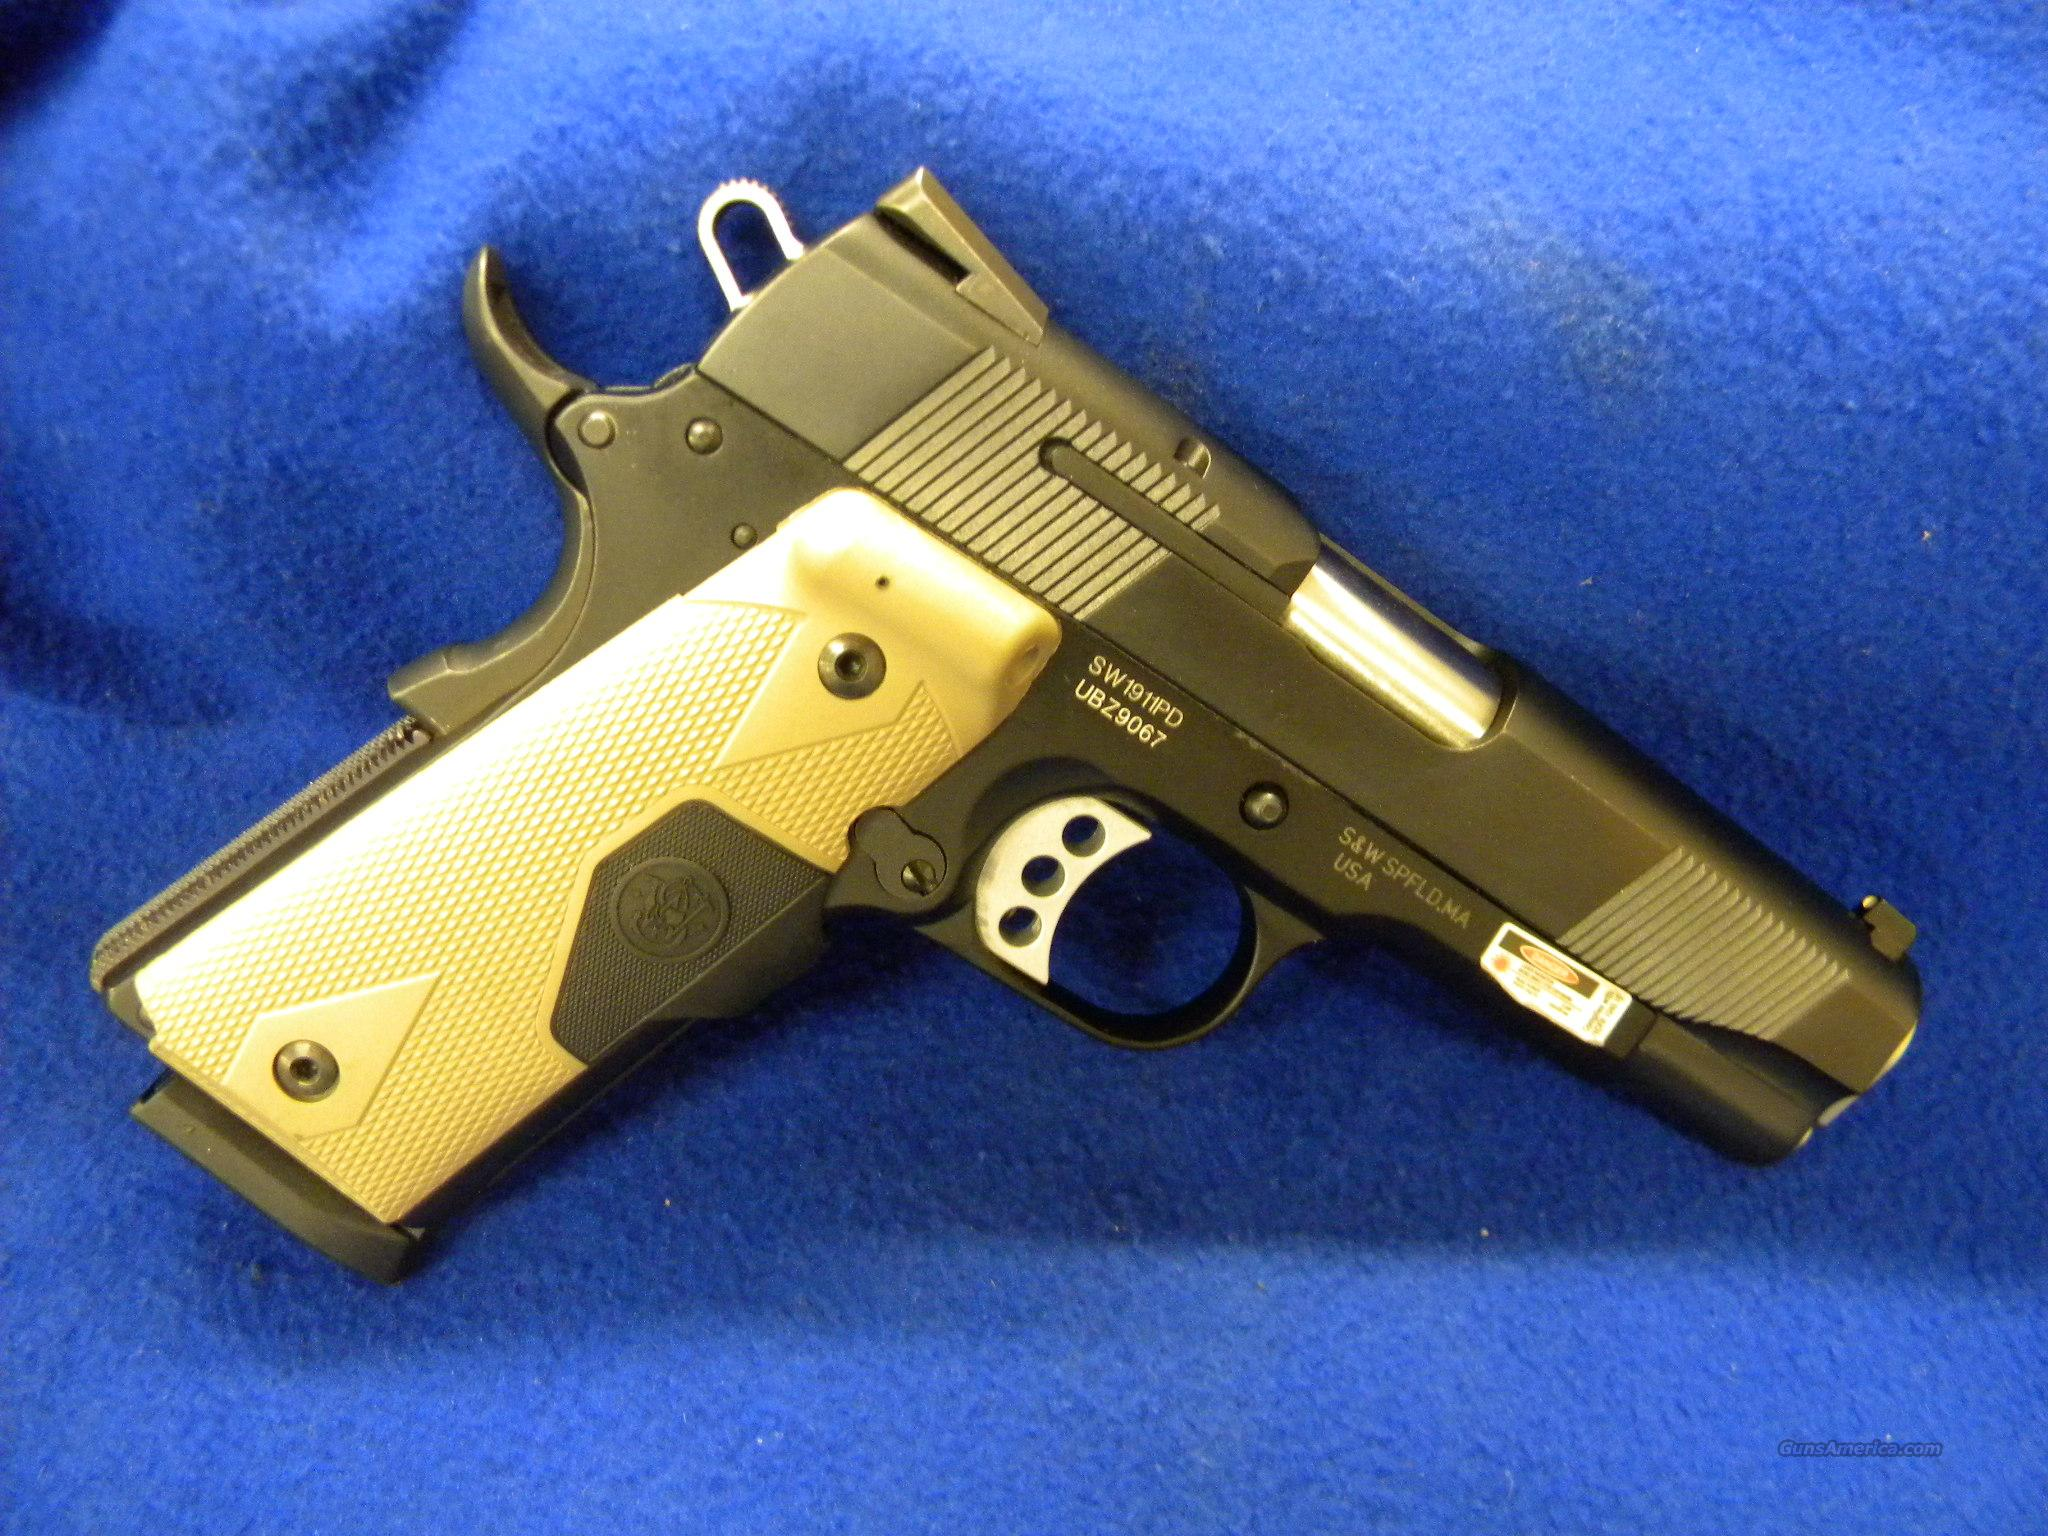 SMITH AND WESSON 1911PD .45ACP 1911  Guns > Pistols > Smith & Wesson Pistols - Autos > Steel Frame